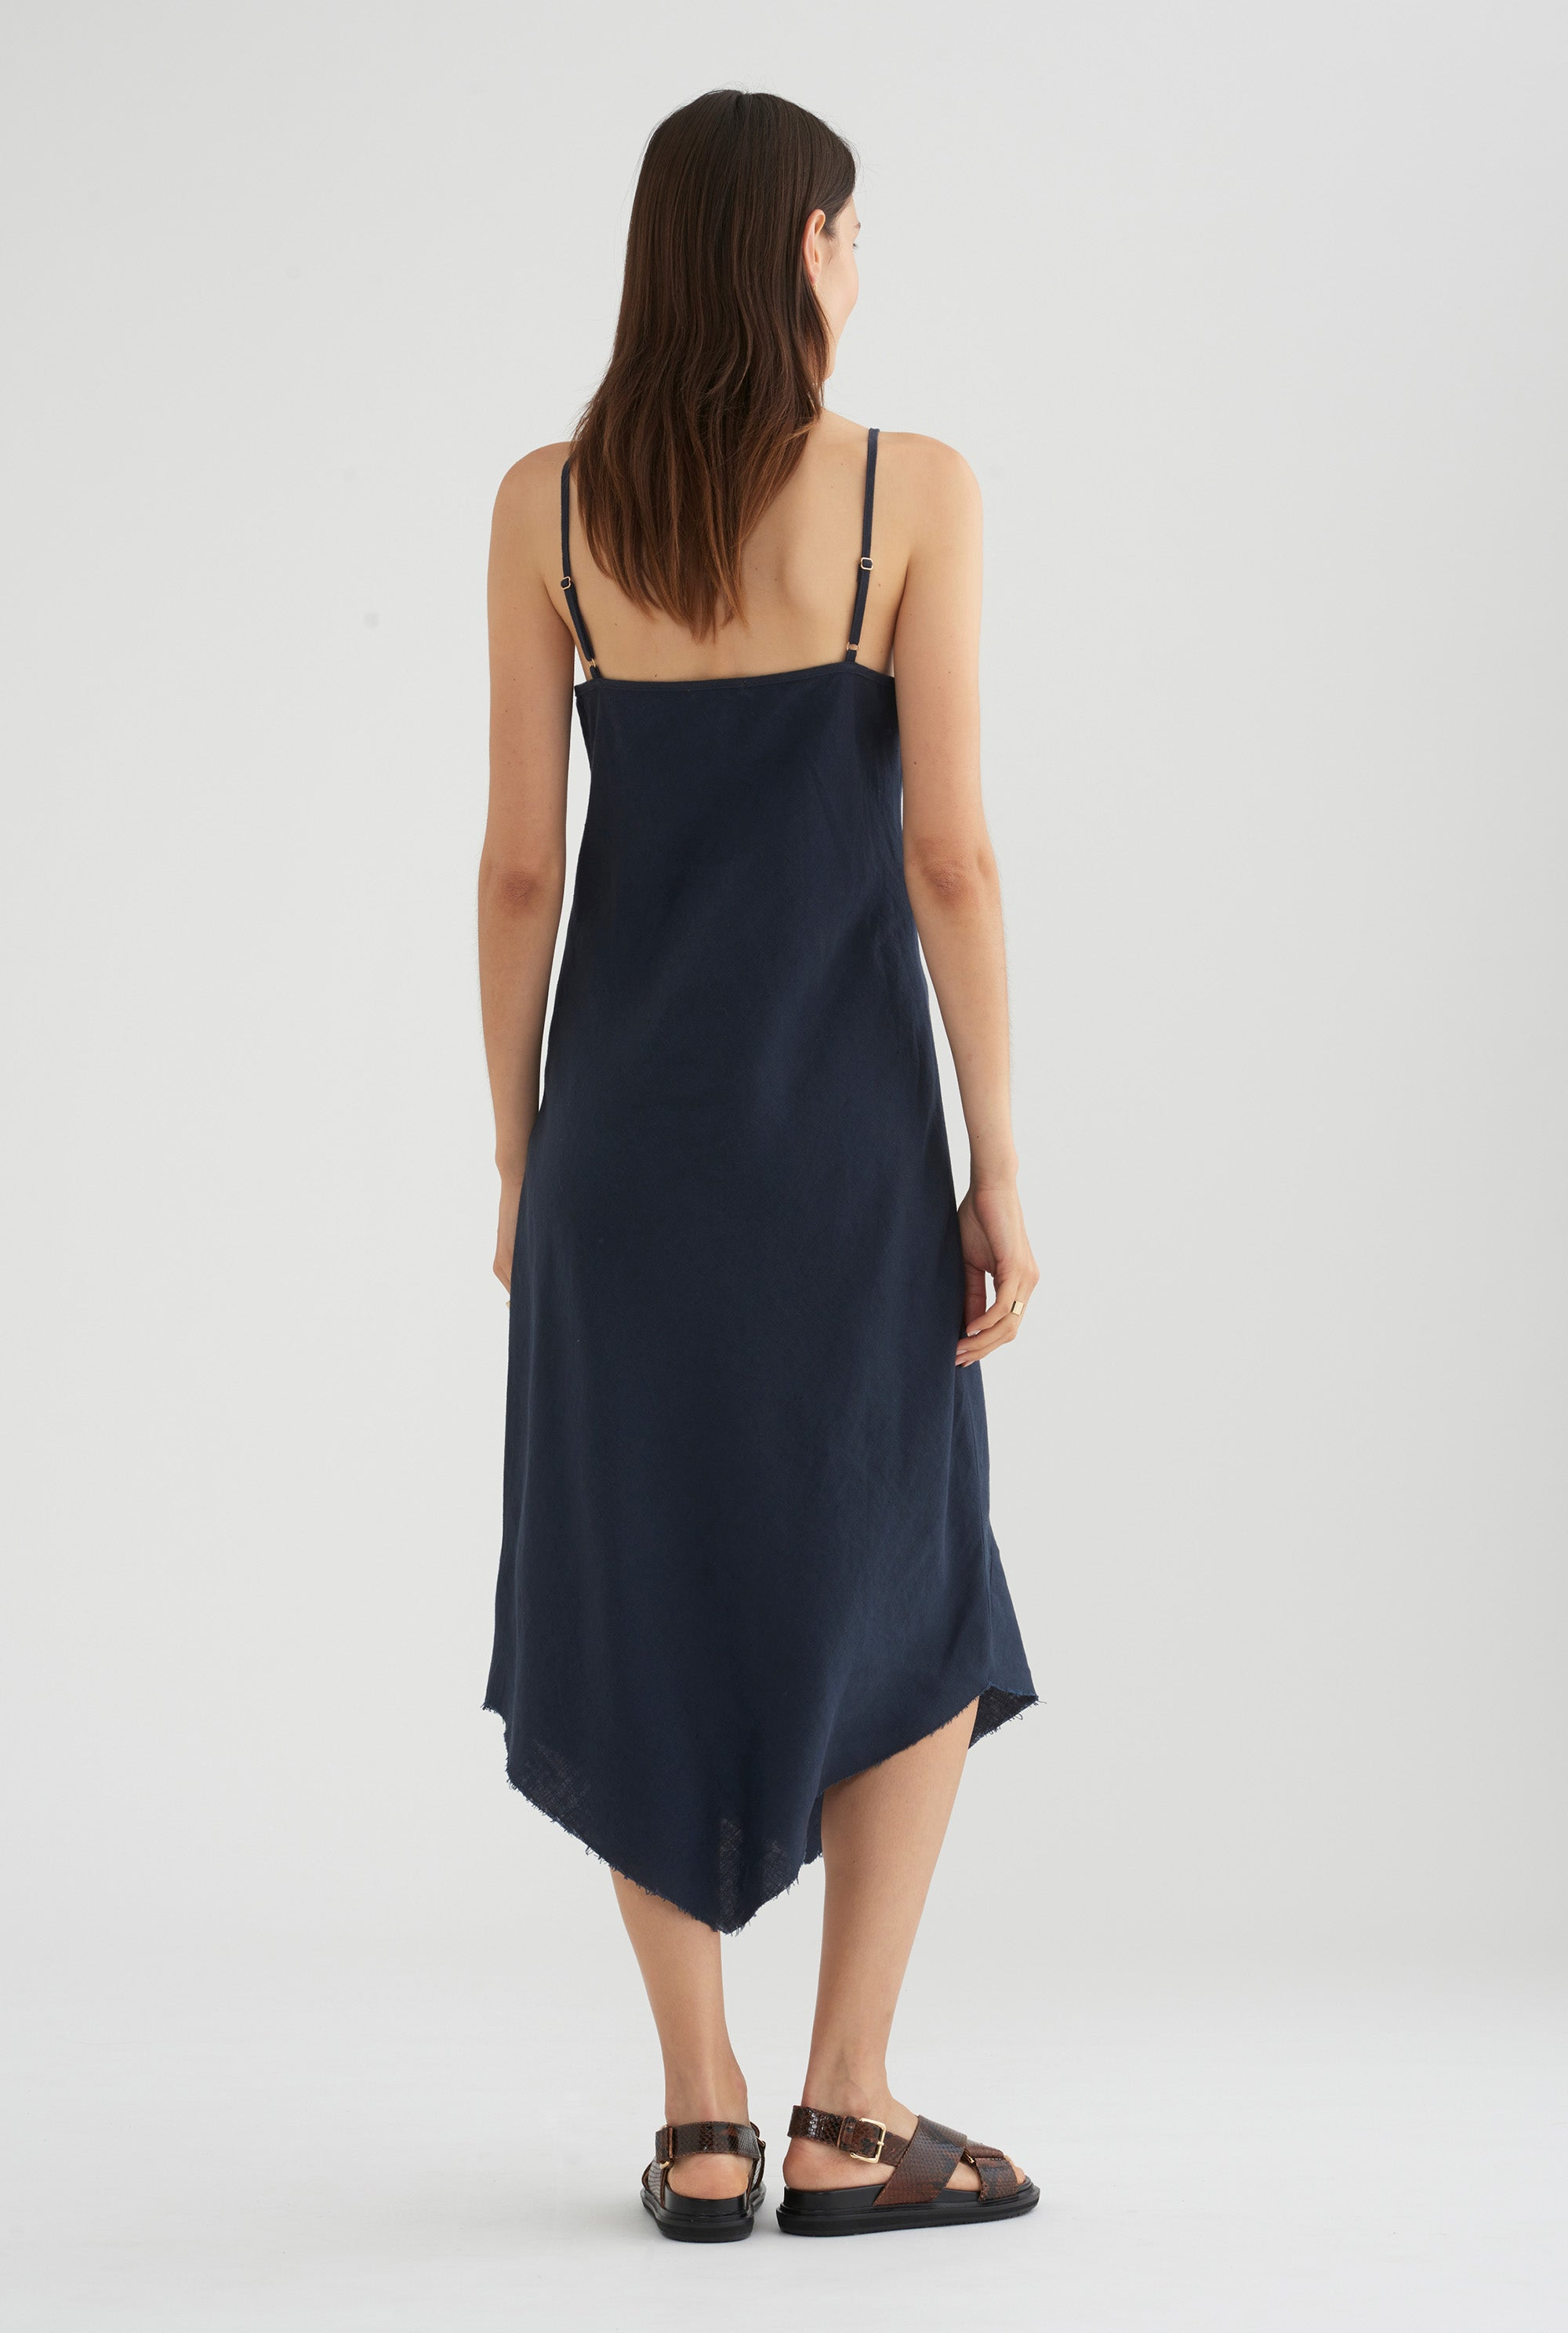 Bias Tie Front Dress - Navy